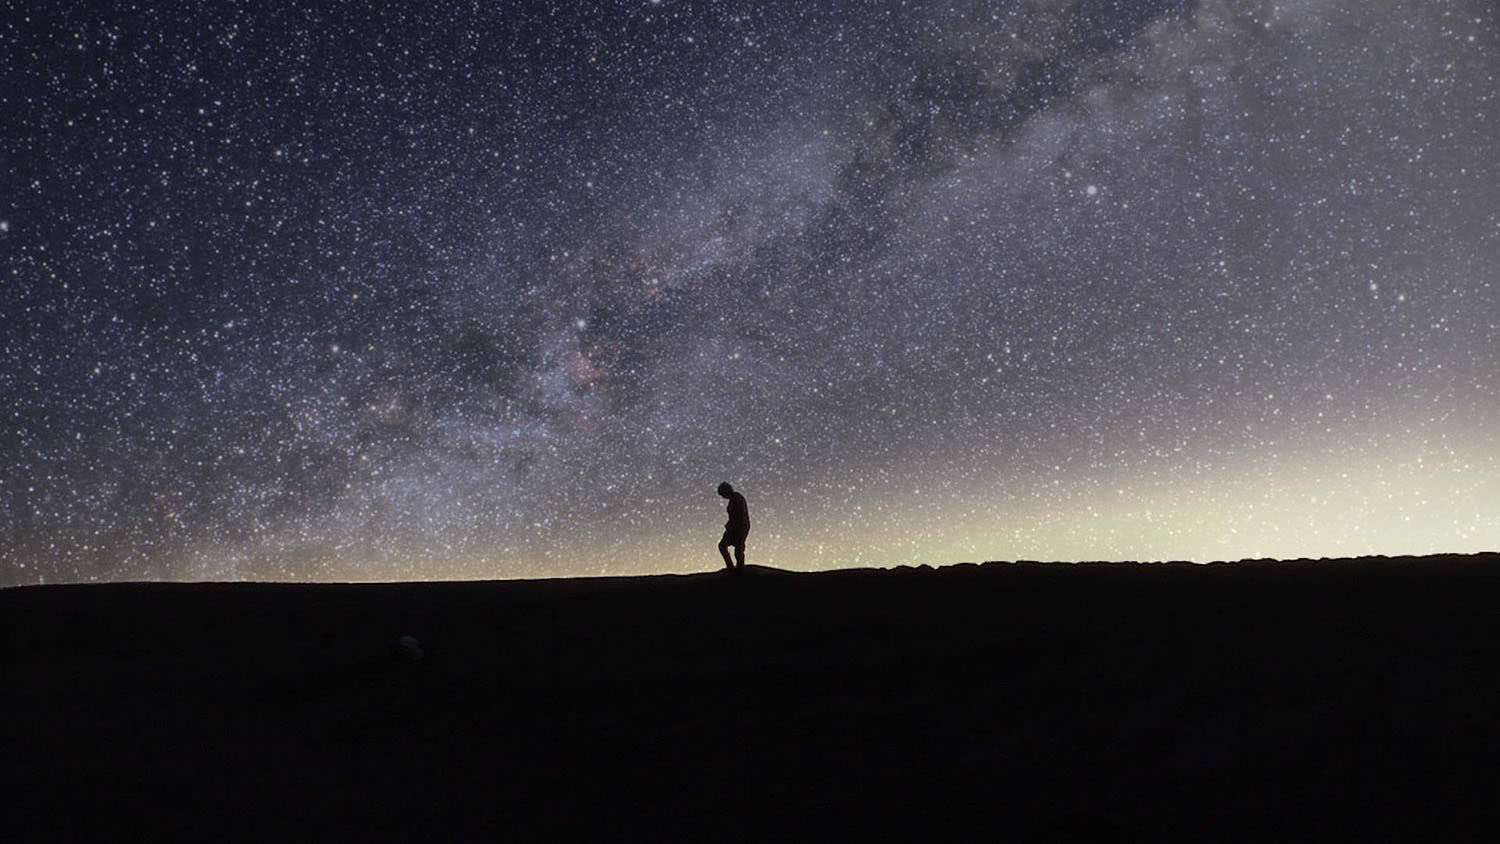 milkyway and silhouette of man in field, Nostalgia for the Light